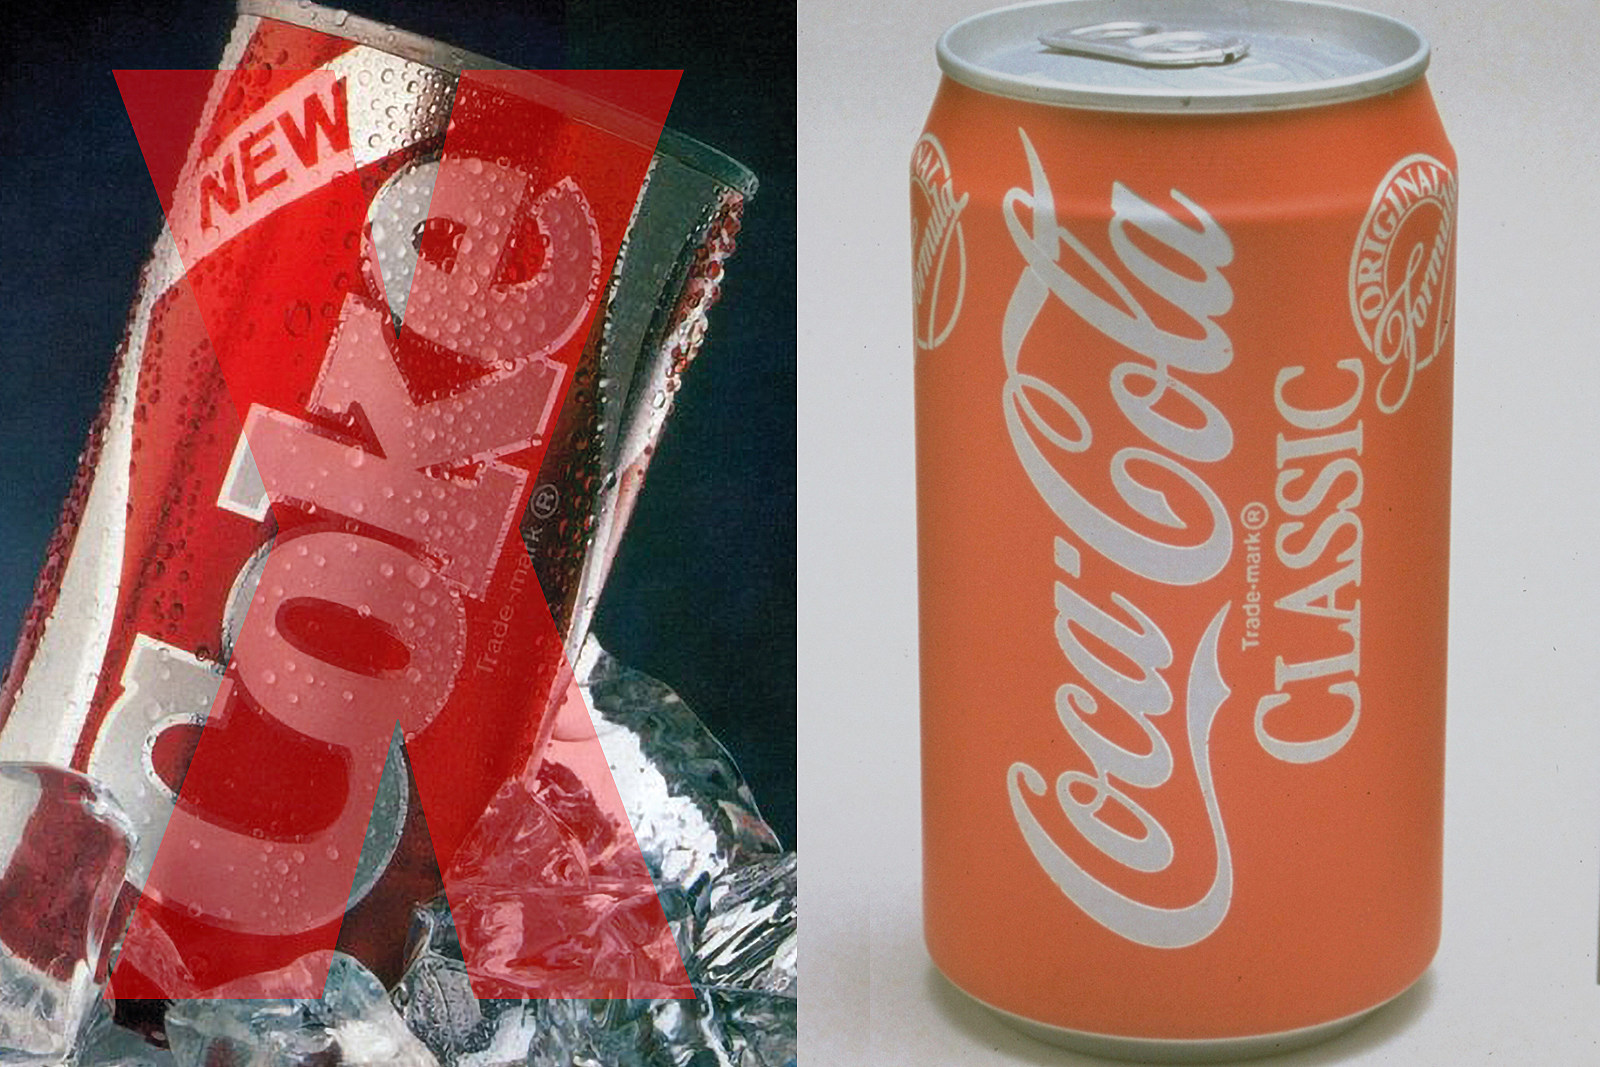 35 Years Ago: The Doomed 'New Coke' Experiment Comes to an End